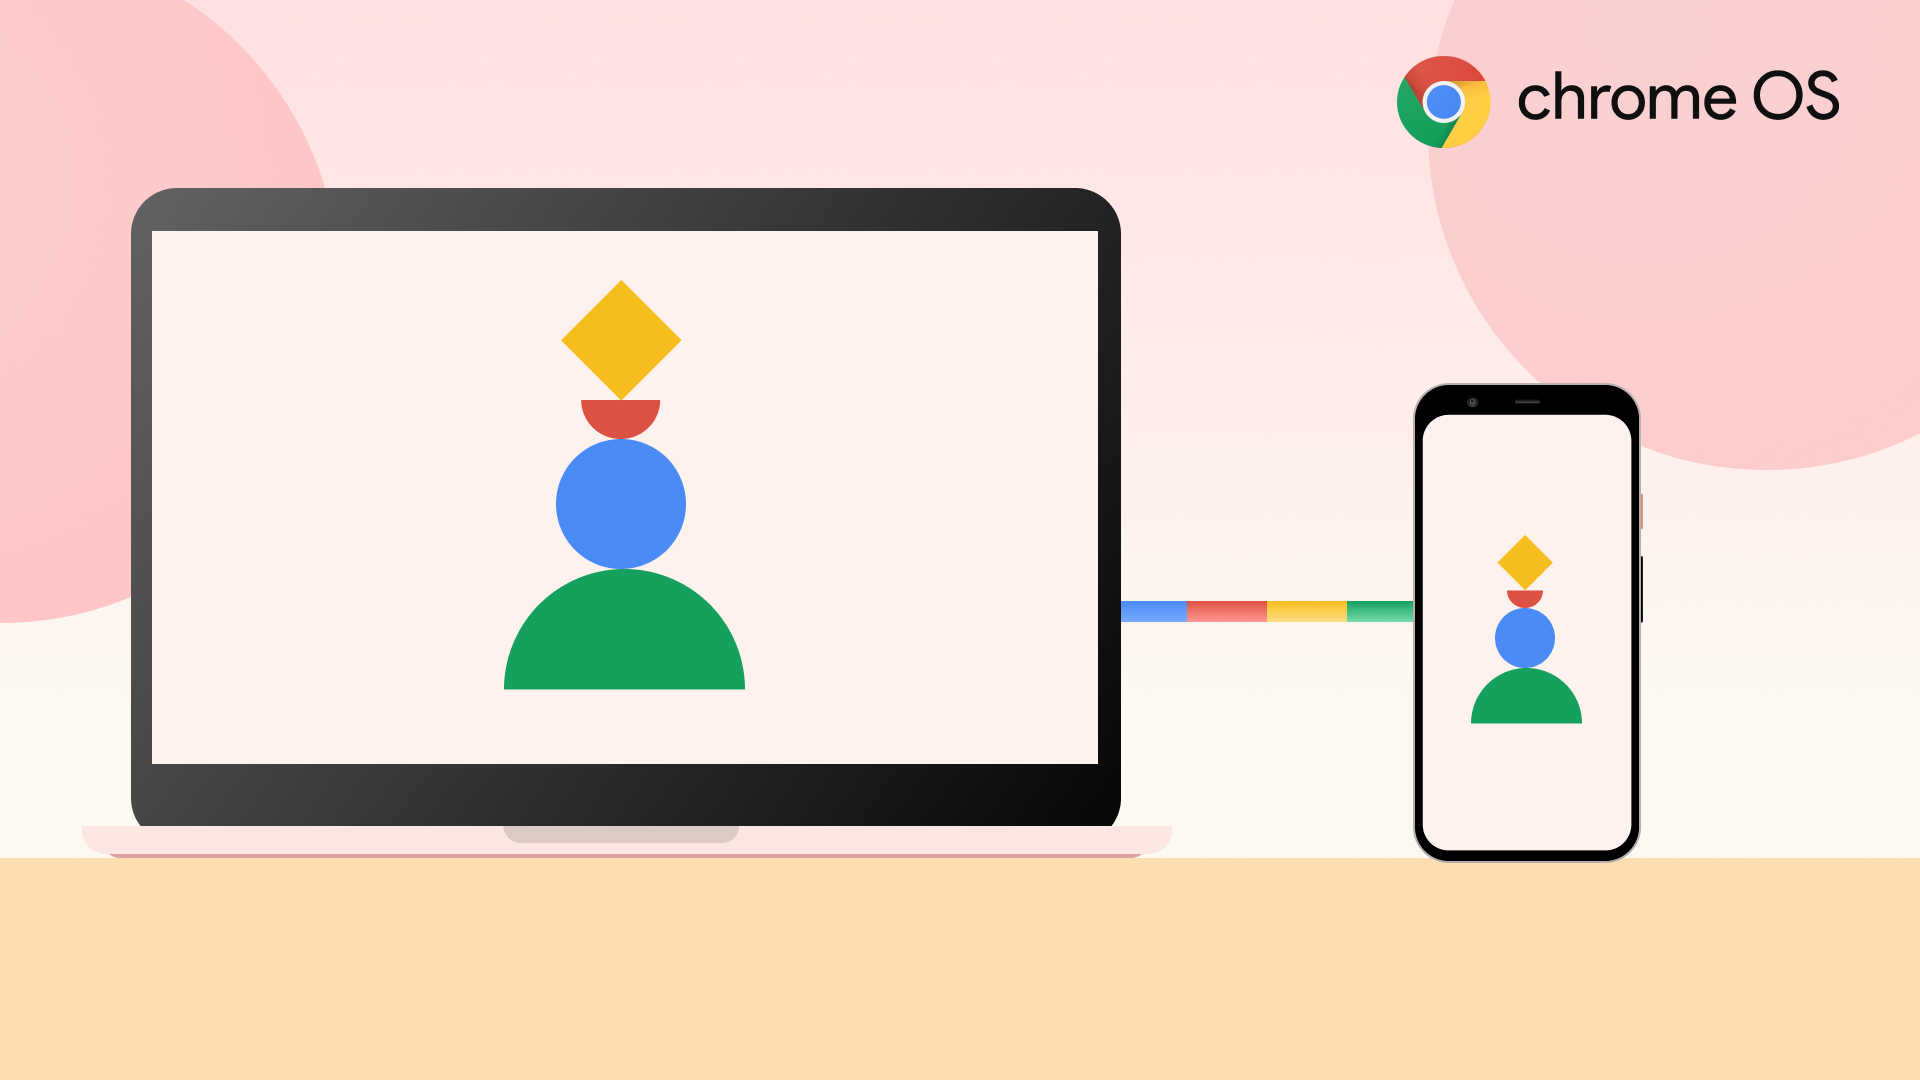 Mirror your phone screen to Chromebooks